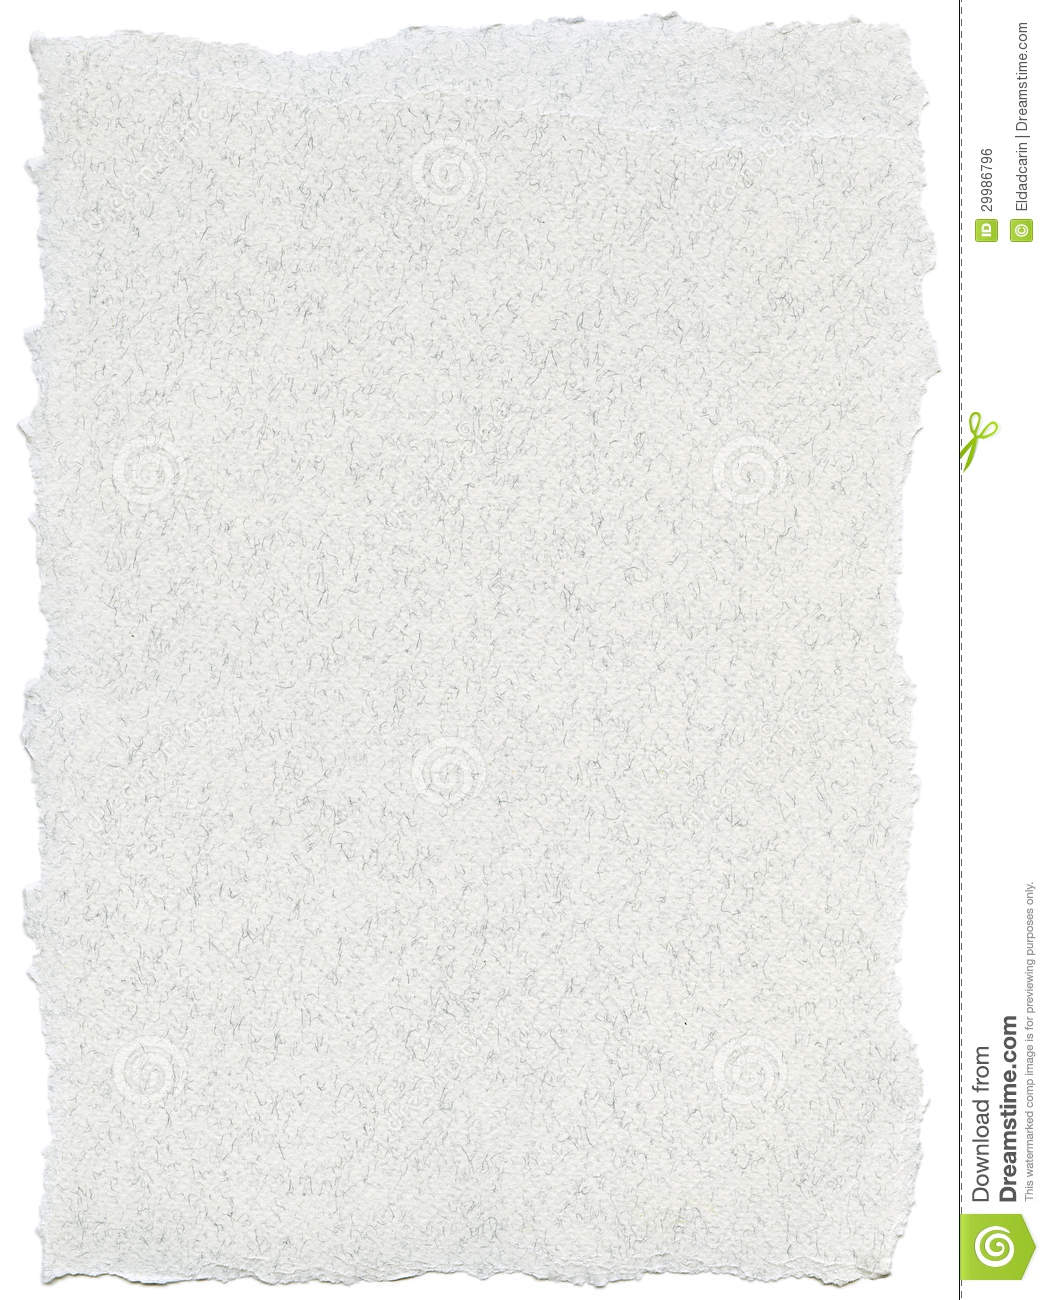 Fiber Paper Texture - White With Torn Edges Stock Photo ...